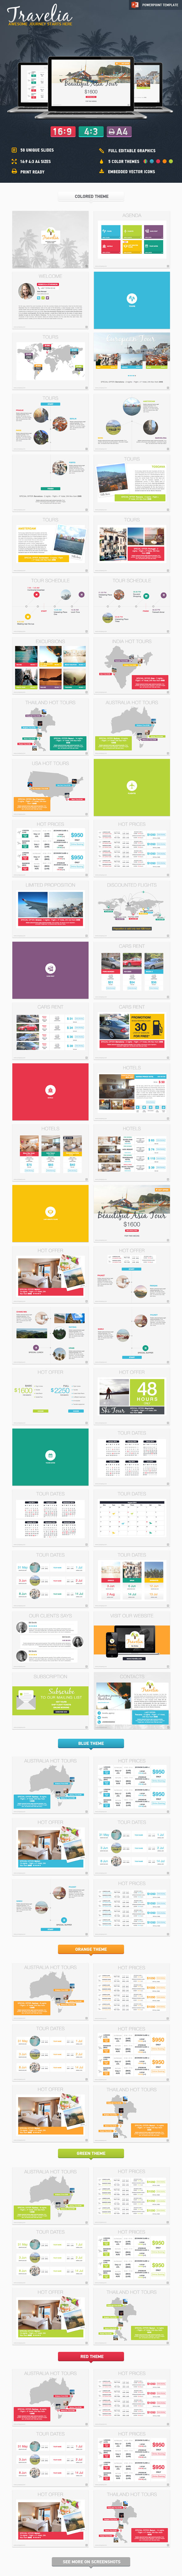 GraphicRiver Travelia PowerPoint Presentation Template 11002059